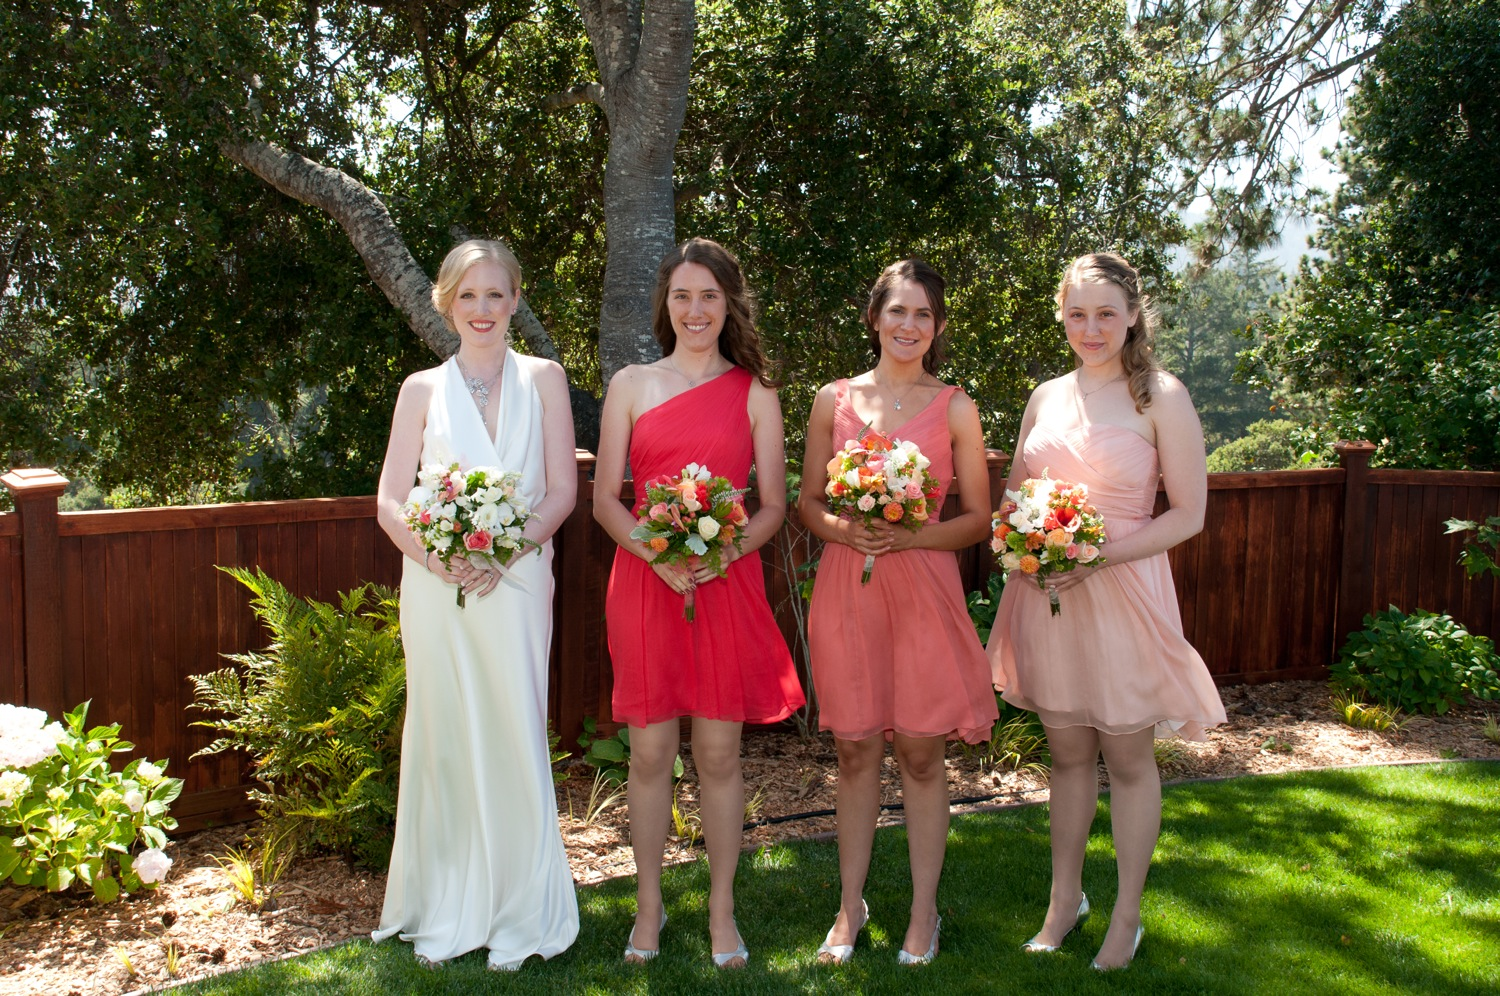 Elizabeth, Christine, Kelly, and Kathryn sporting their own styles.  Rather than going for uniformity, each bridesmaid had a different color and cut to express themselves.